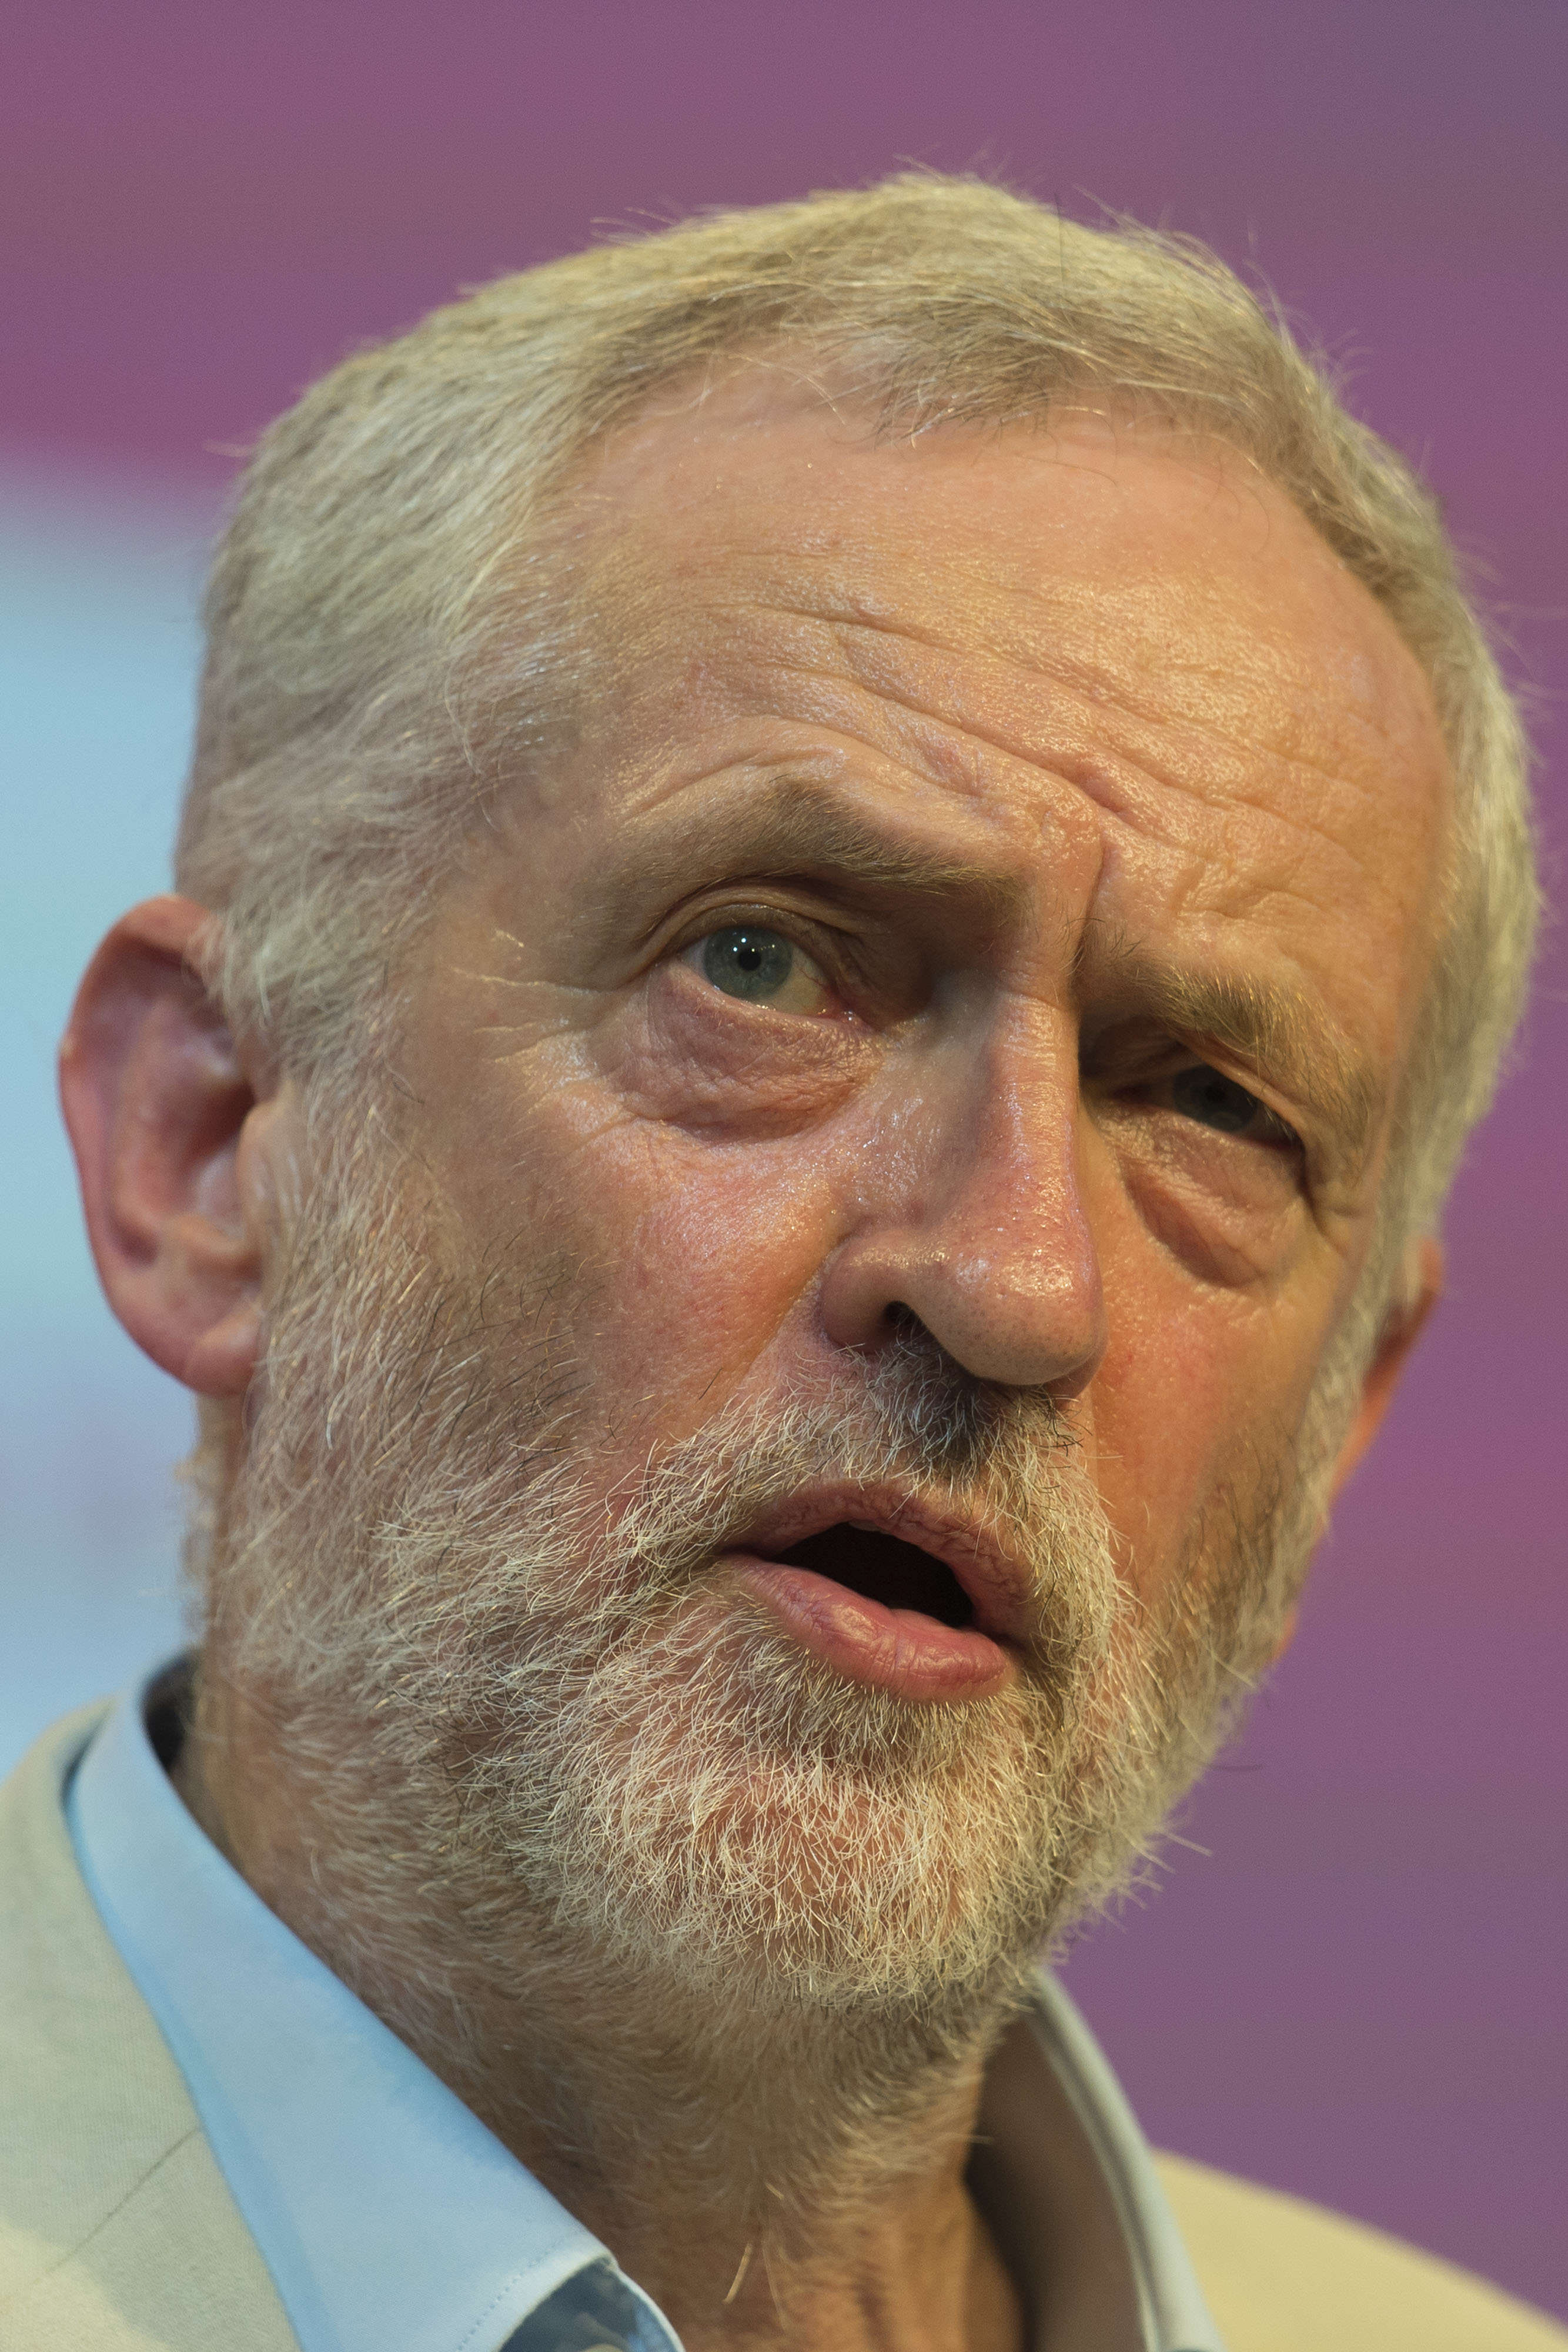 Jeremy Corbyn Has Revealed He Fears His Cat May Be A Tory corbyn1